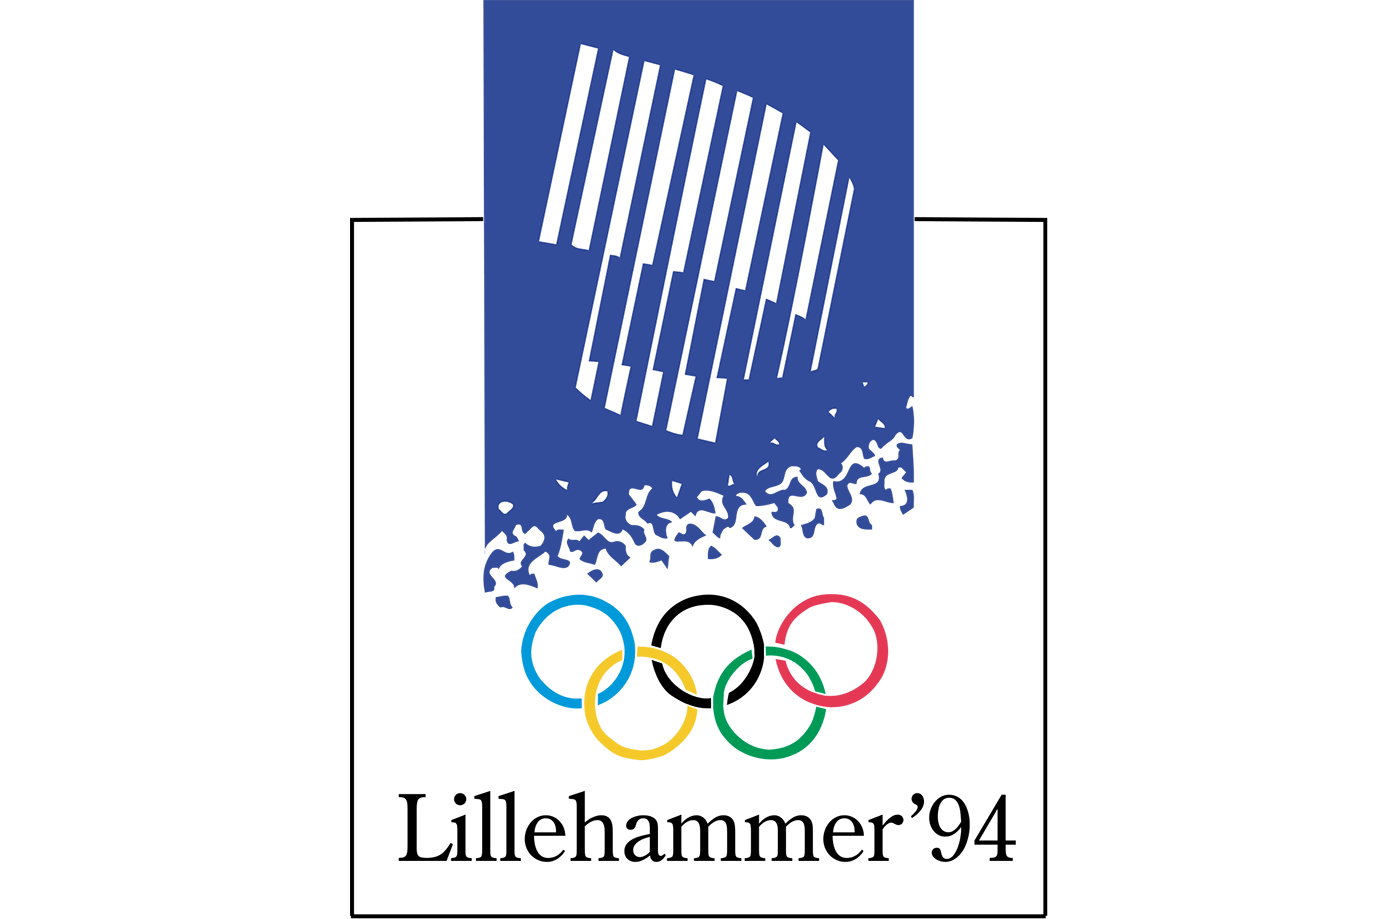 1994 Winter Olympics Highlights Video Movie free download HD 720p